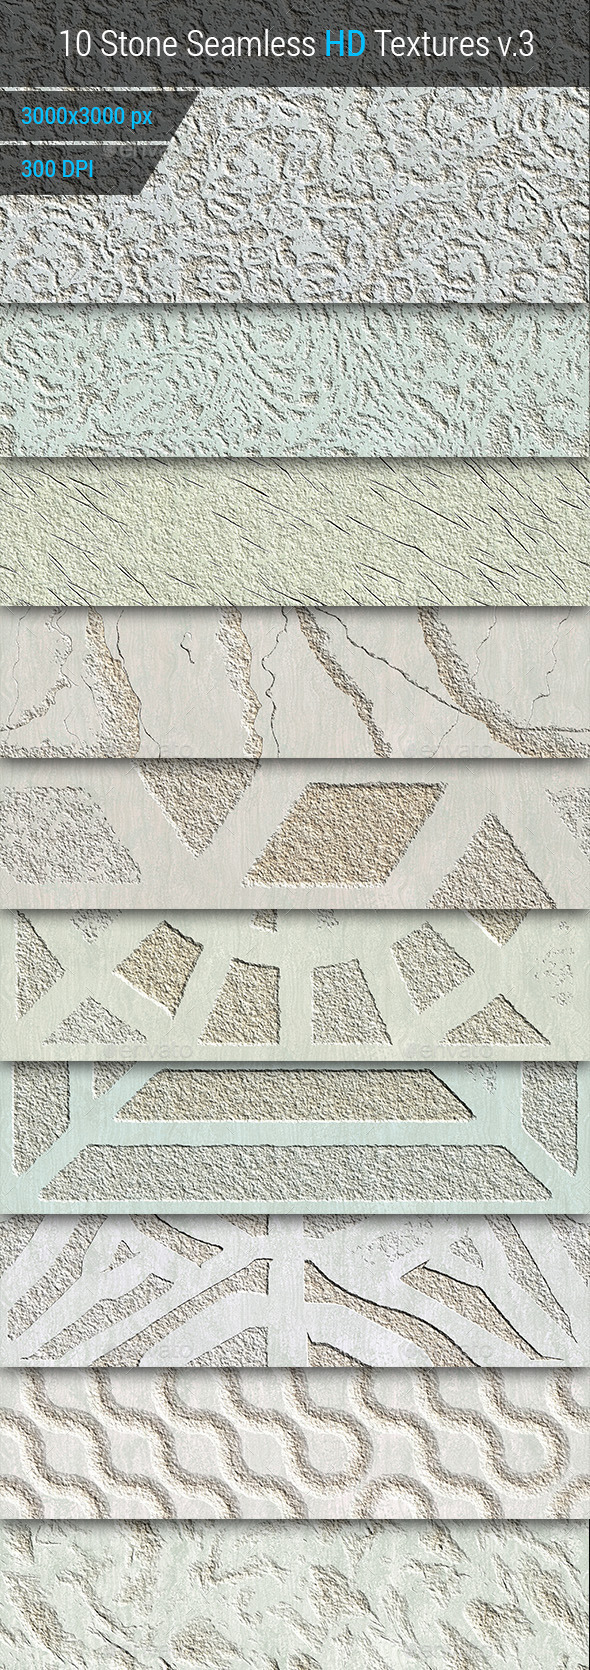 Stone Seamless and Tileable HD Textures Set v.3 - Stone Textures